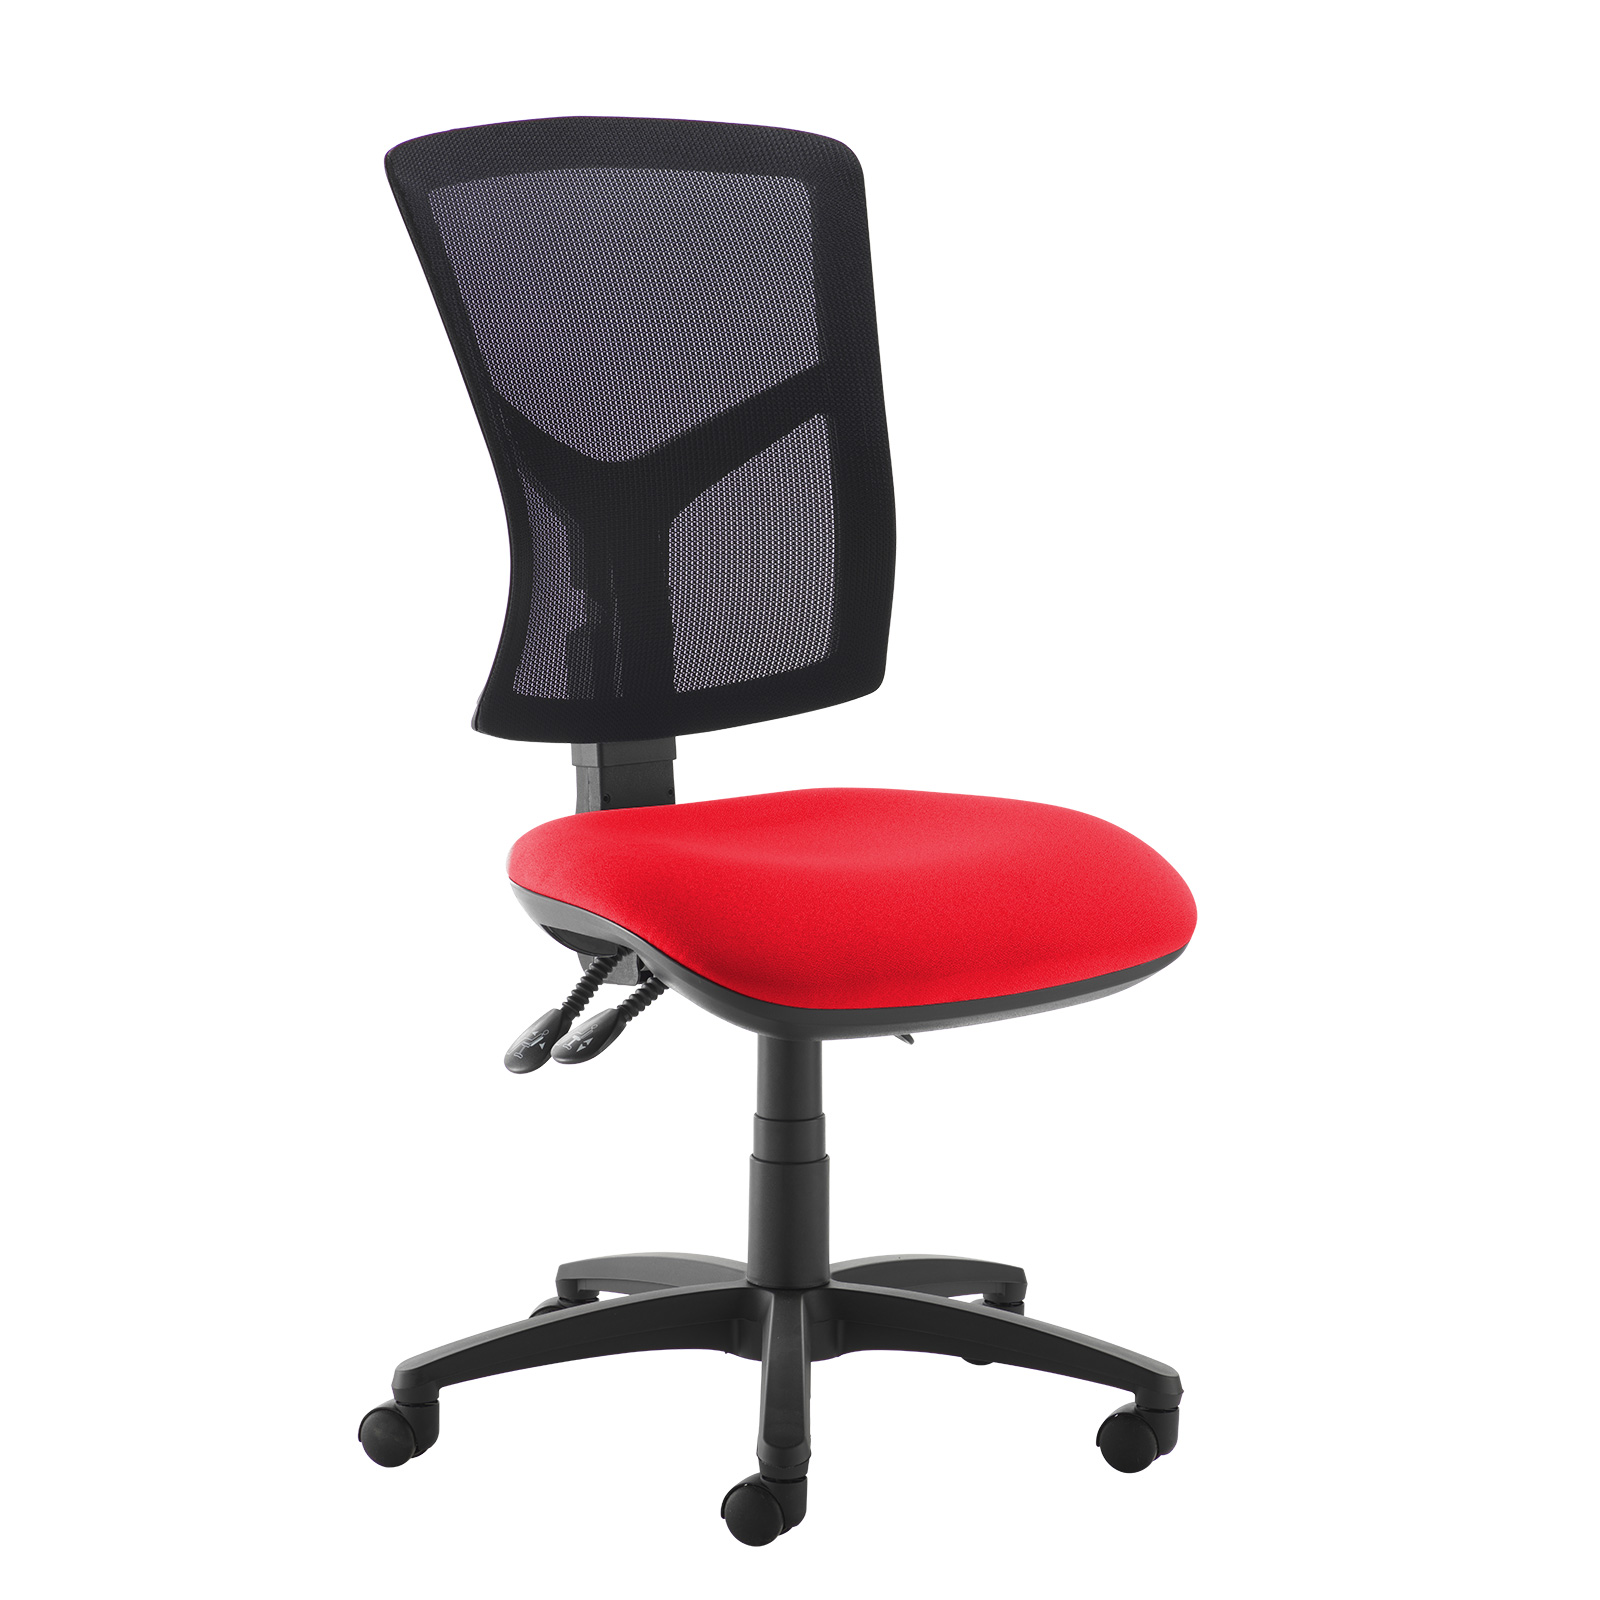 Senza high mesh back operator chair with no arms - red